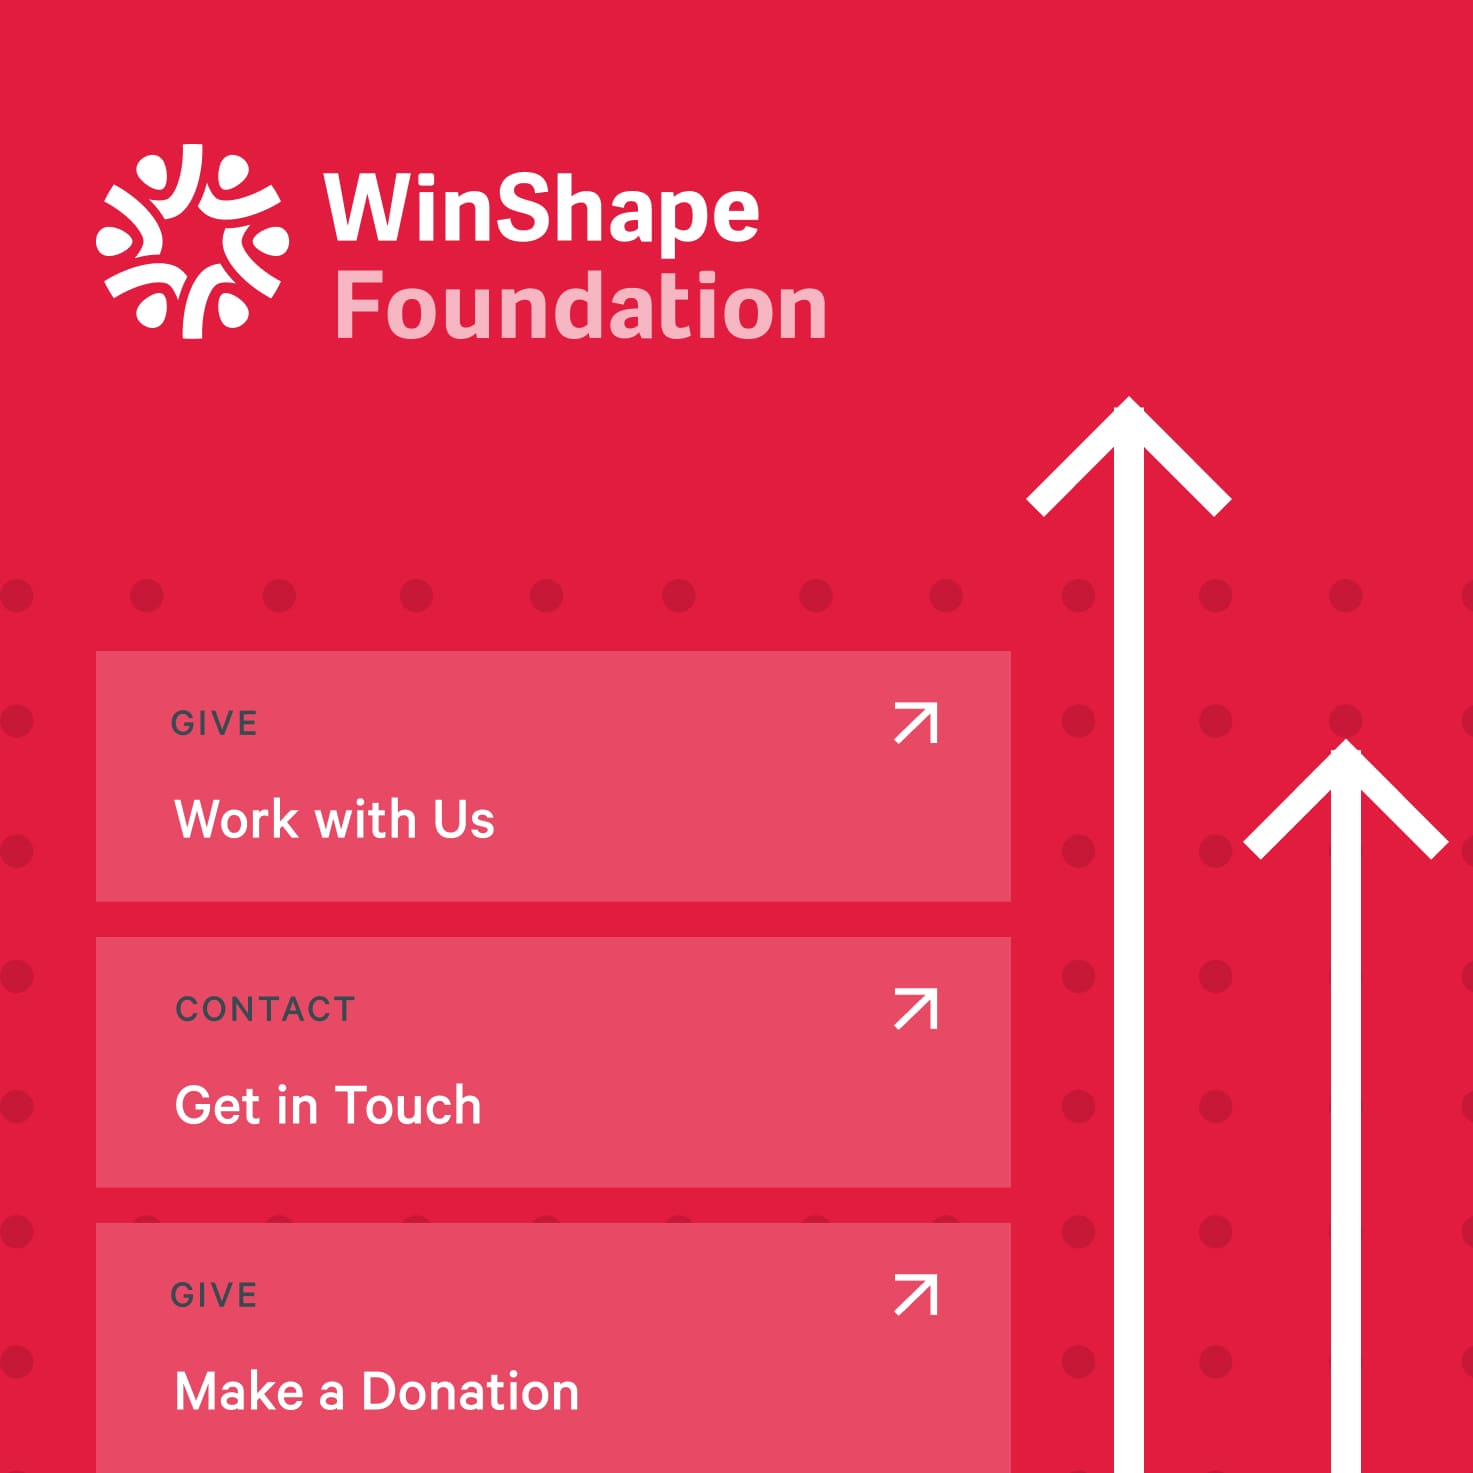 Collage of UI elements used on the Winshape Foundation site.